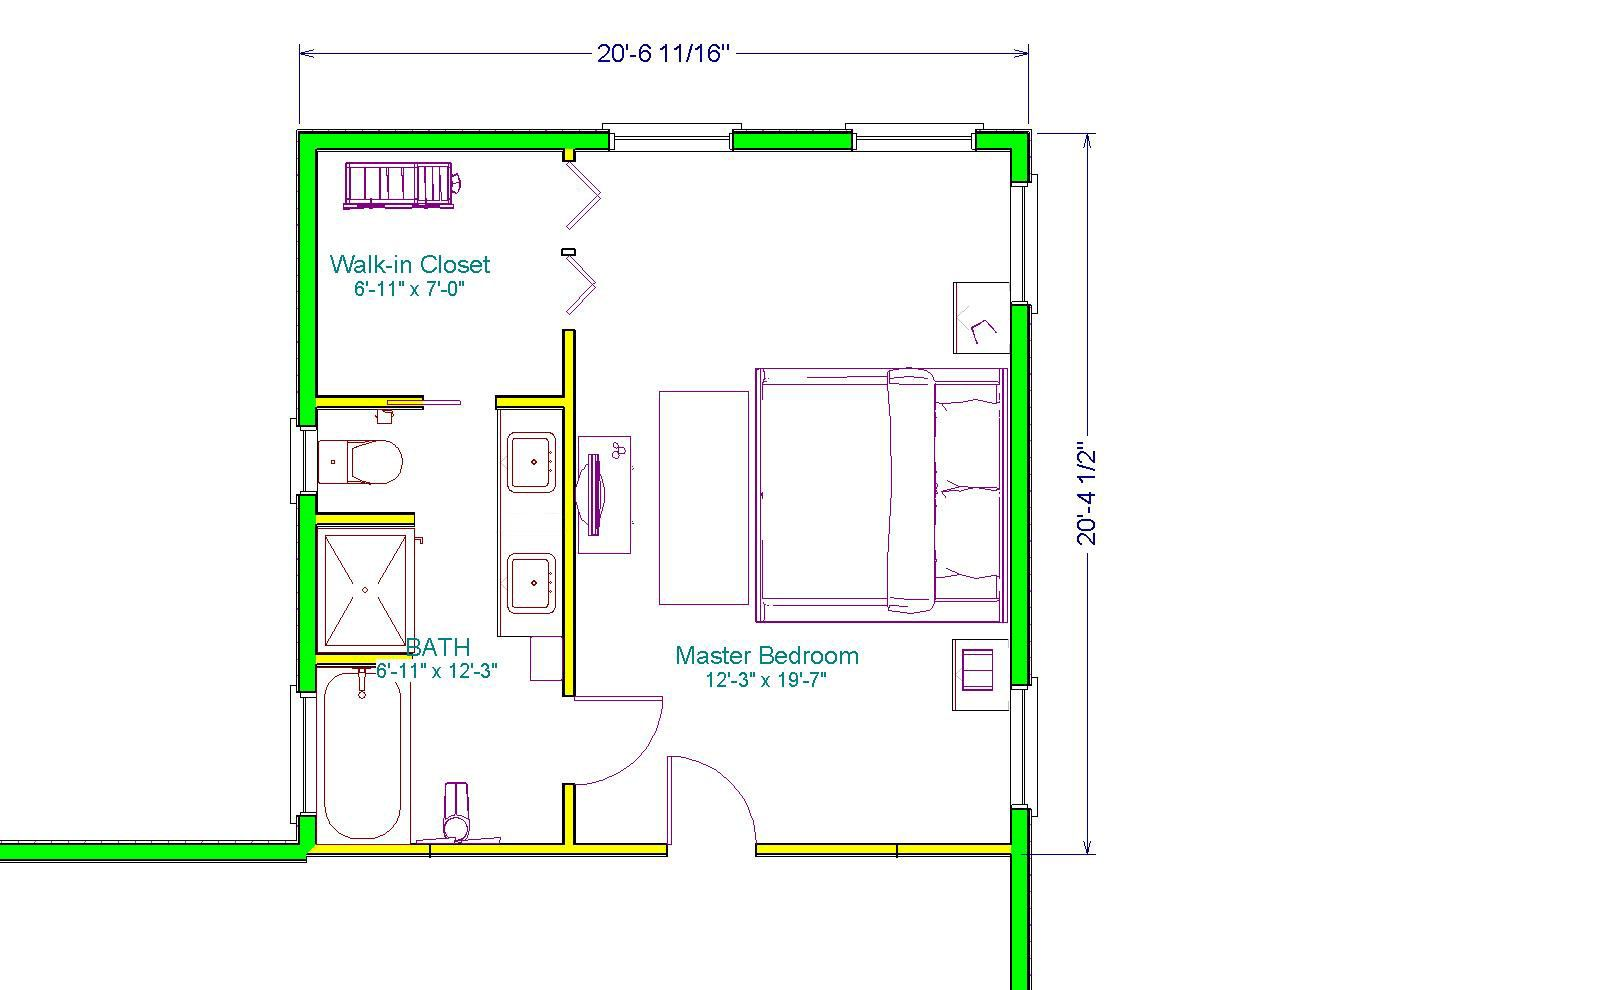 Bathroom layout dimensions - Master Suite Plans With Dimensions Out Master Suite Addition This 20 X